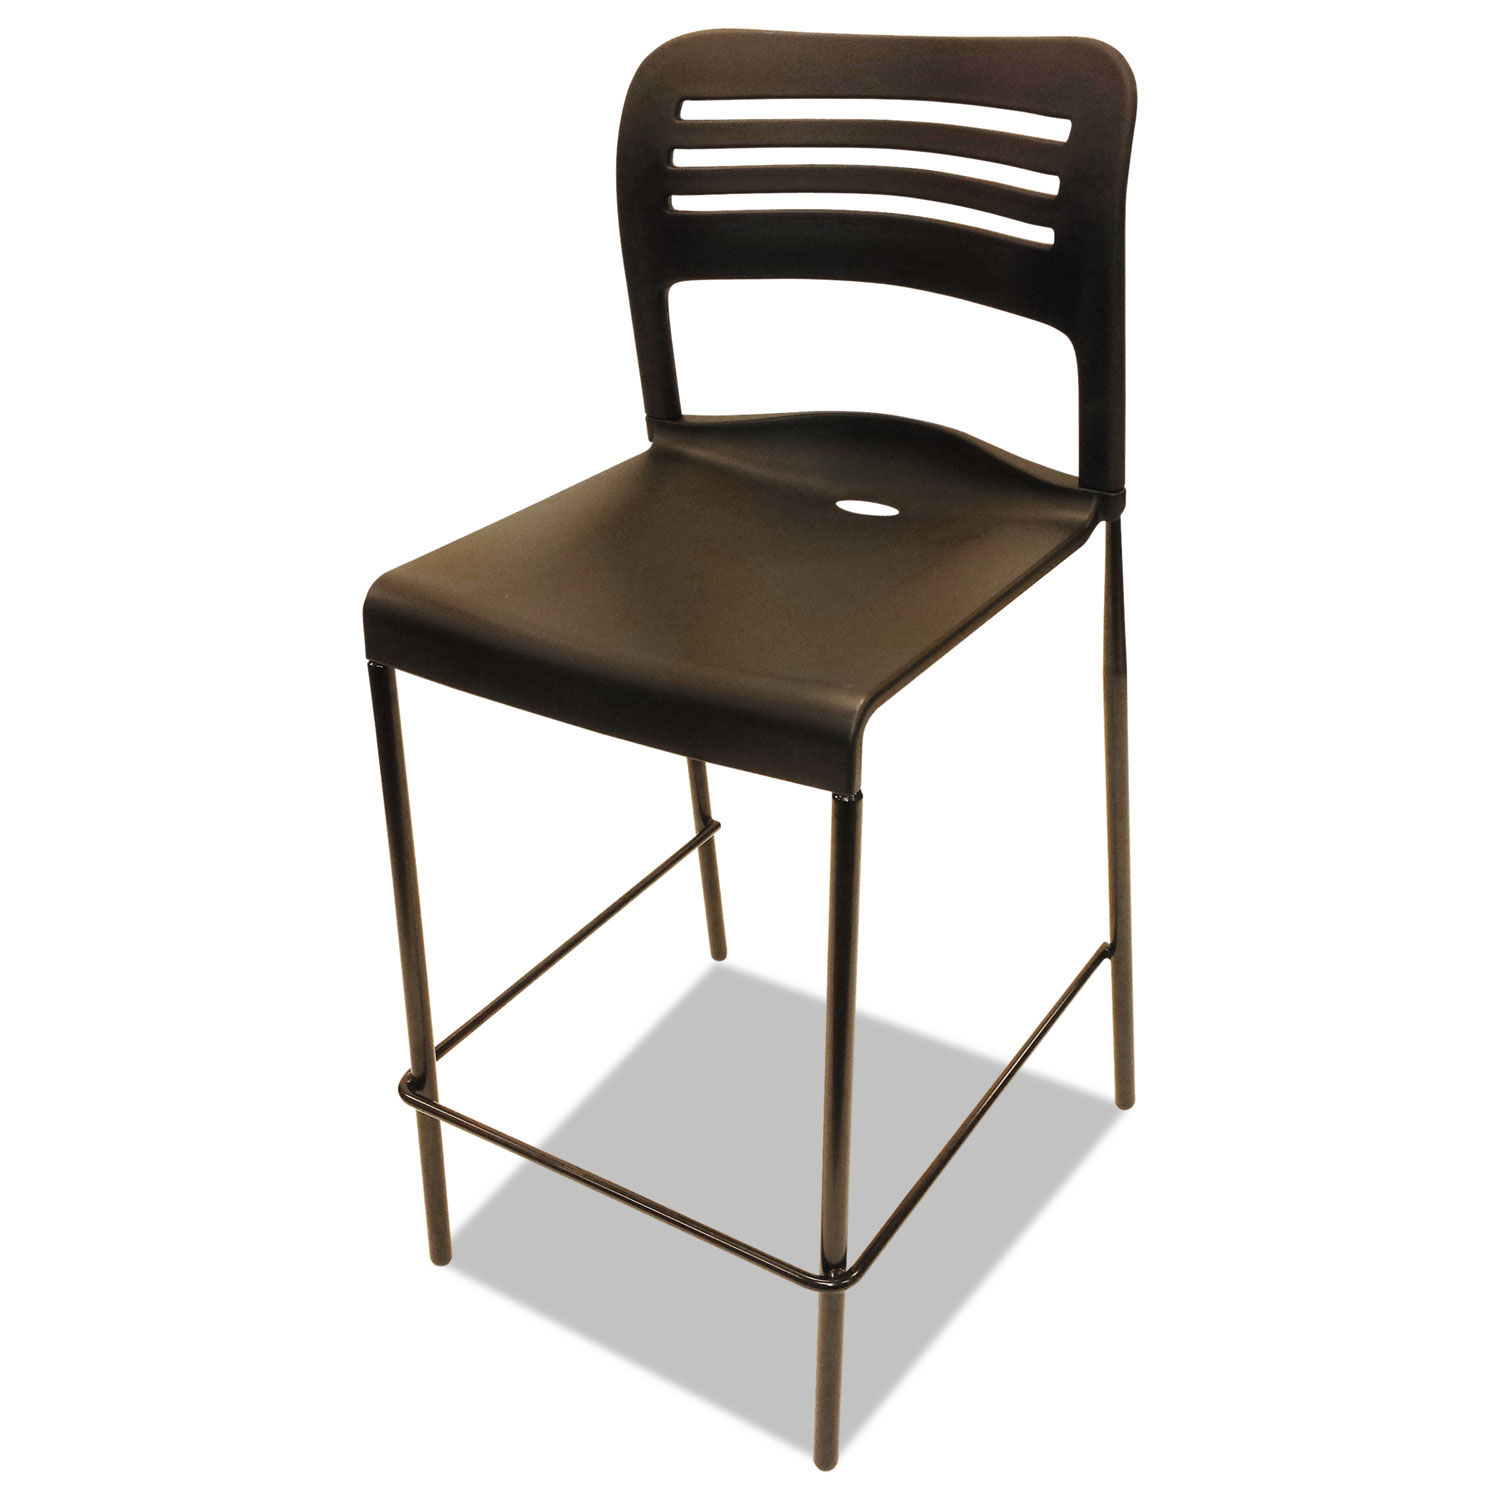 Excellent Counter Height Stacking Stool Black 2 Carton Gmtry Best Dining Table And Chair Ideas Images Gmtryco